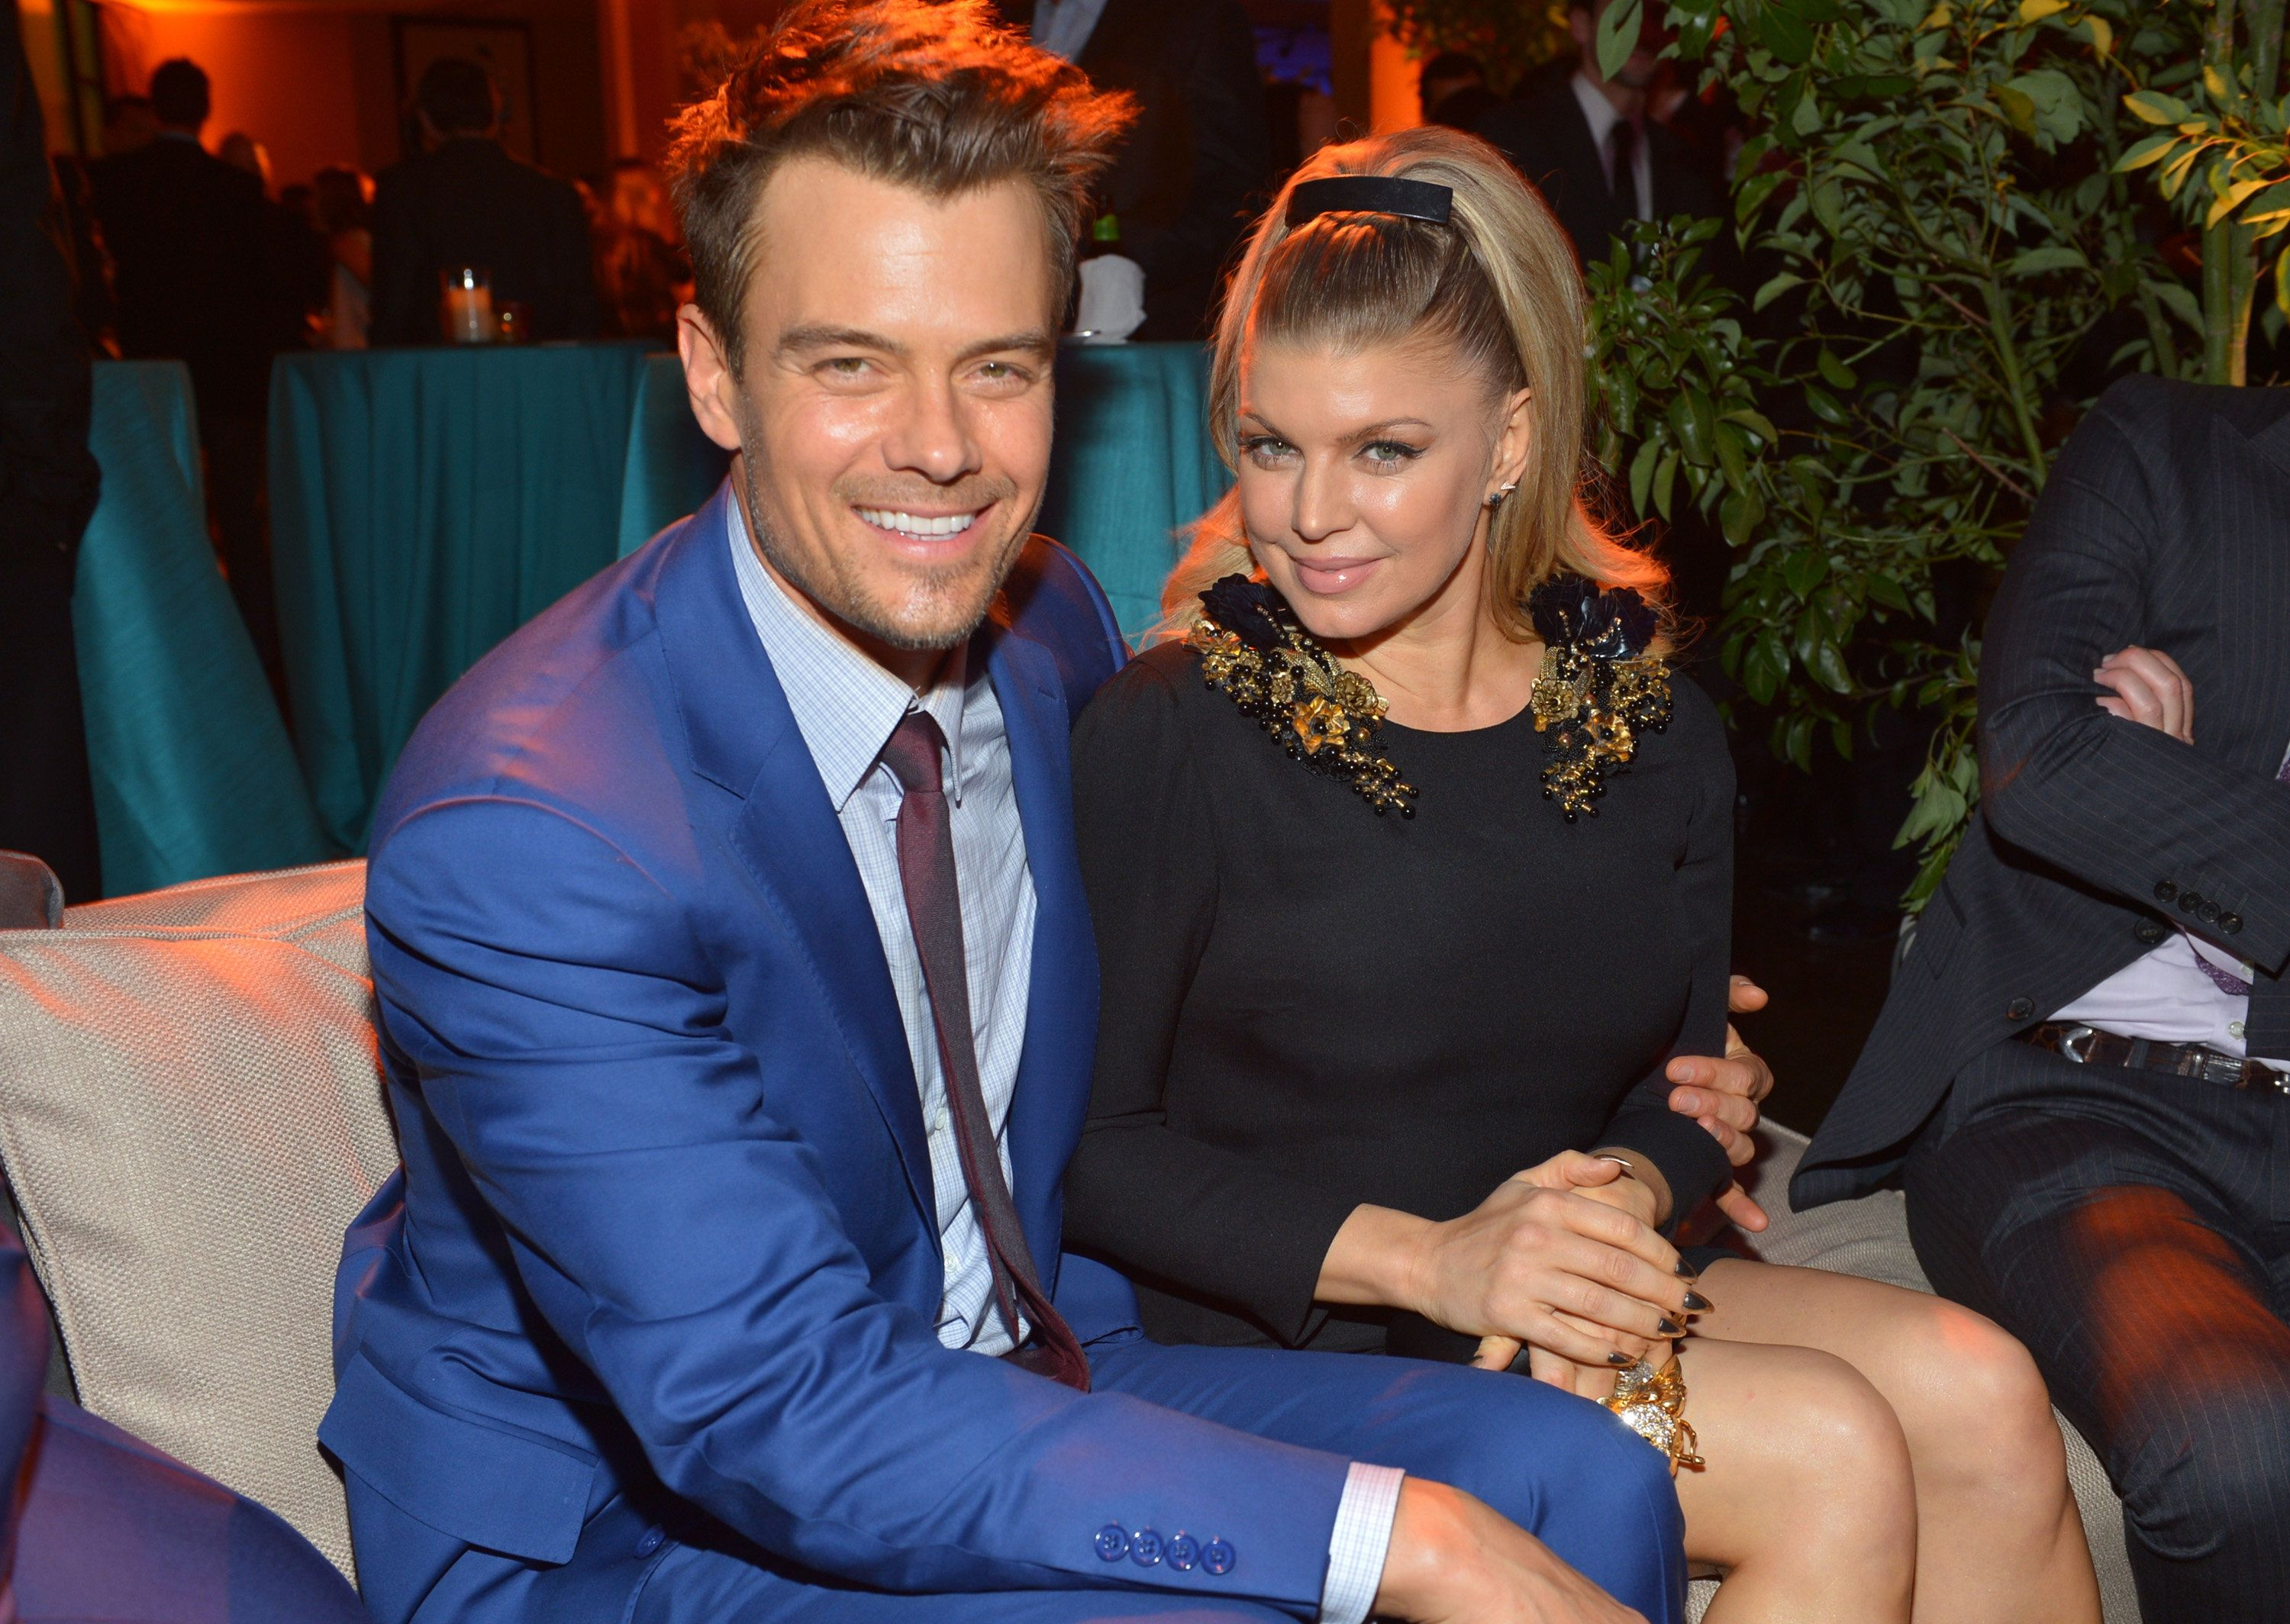 HOLLYWOOD, CA - FEBRUARY 05:  Actor Josh Duhamel (L) and actress/singer Fergie attend the premiere of Relativity Media's 'Safe Haven' after party at The Terrace At Hollywood & Highland on February 5, 2013 in Hollywood, California.  (Photo by Alberto E. Rodriguez/Getty Images for Relativity Media)